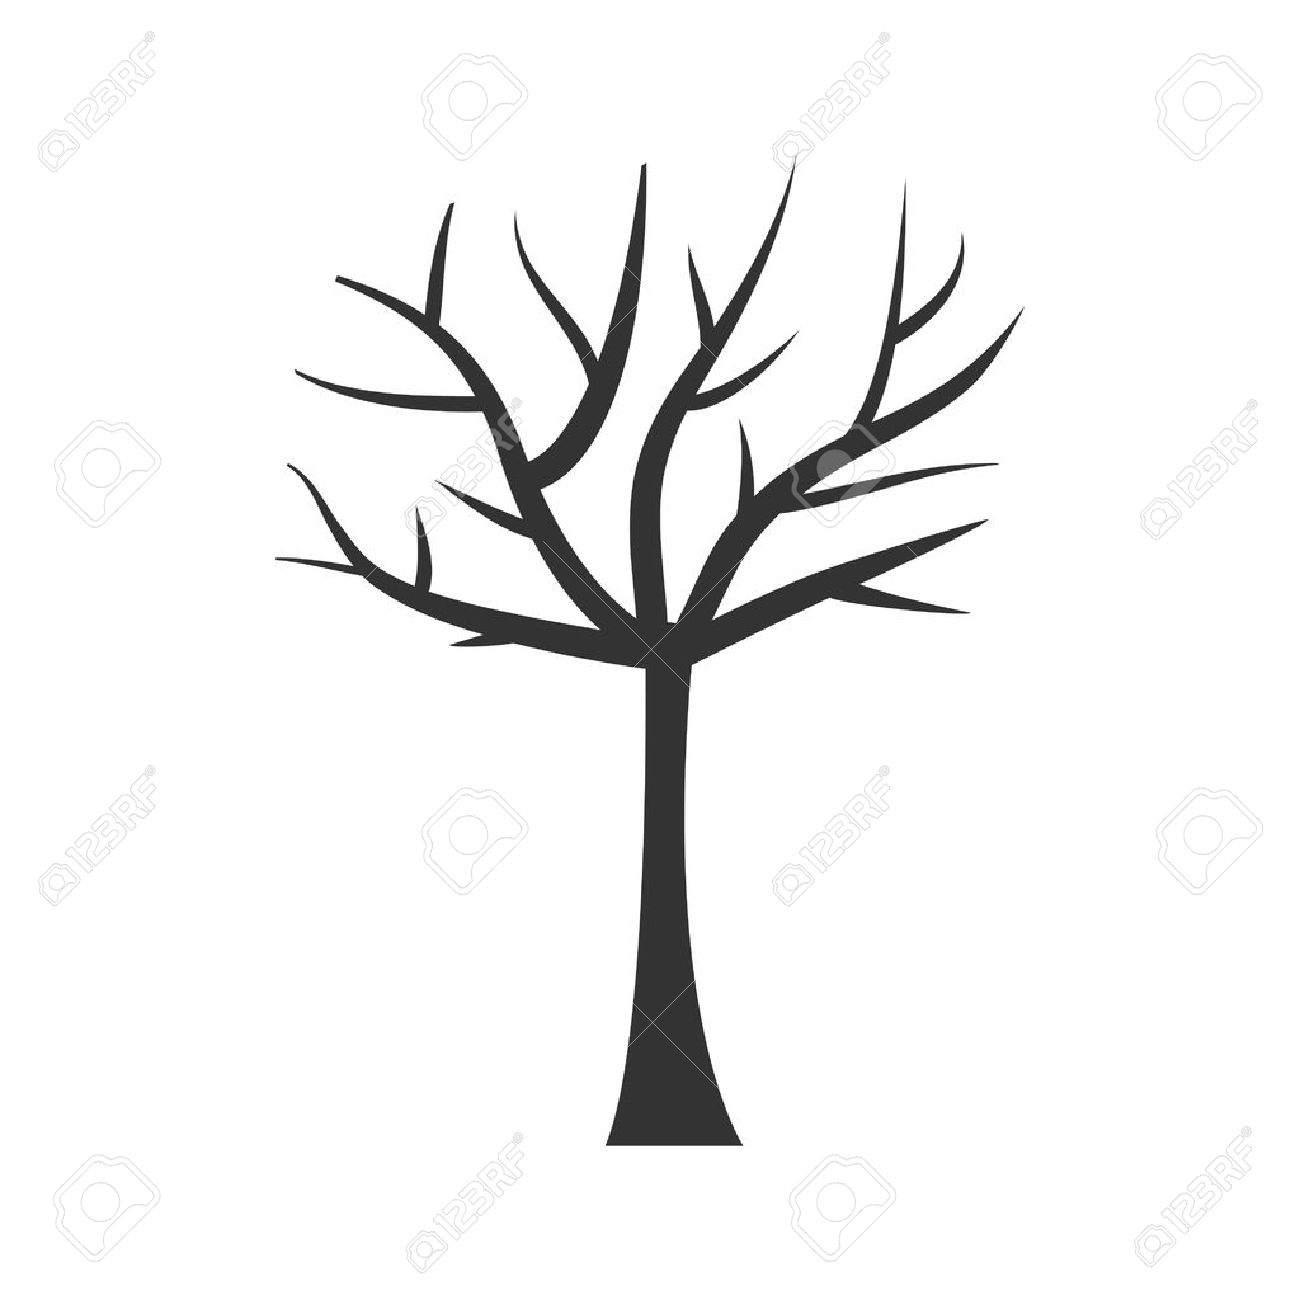 Tree Trunk Silhouette Tree Branch Plant Clip Art Isolated